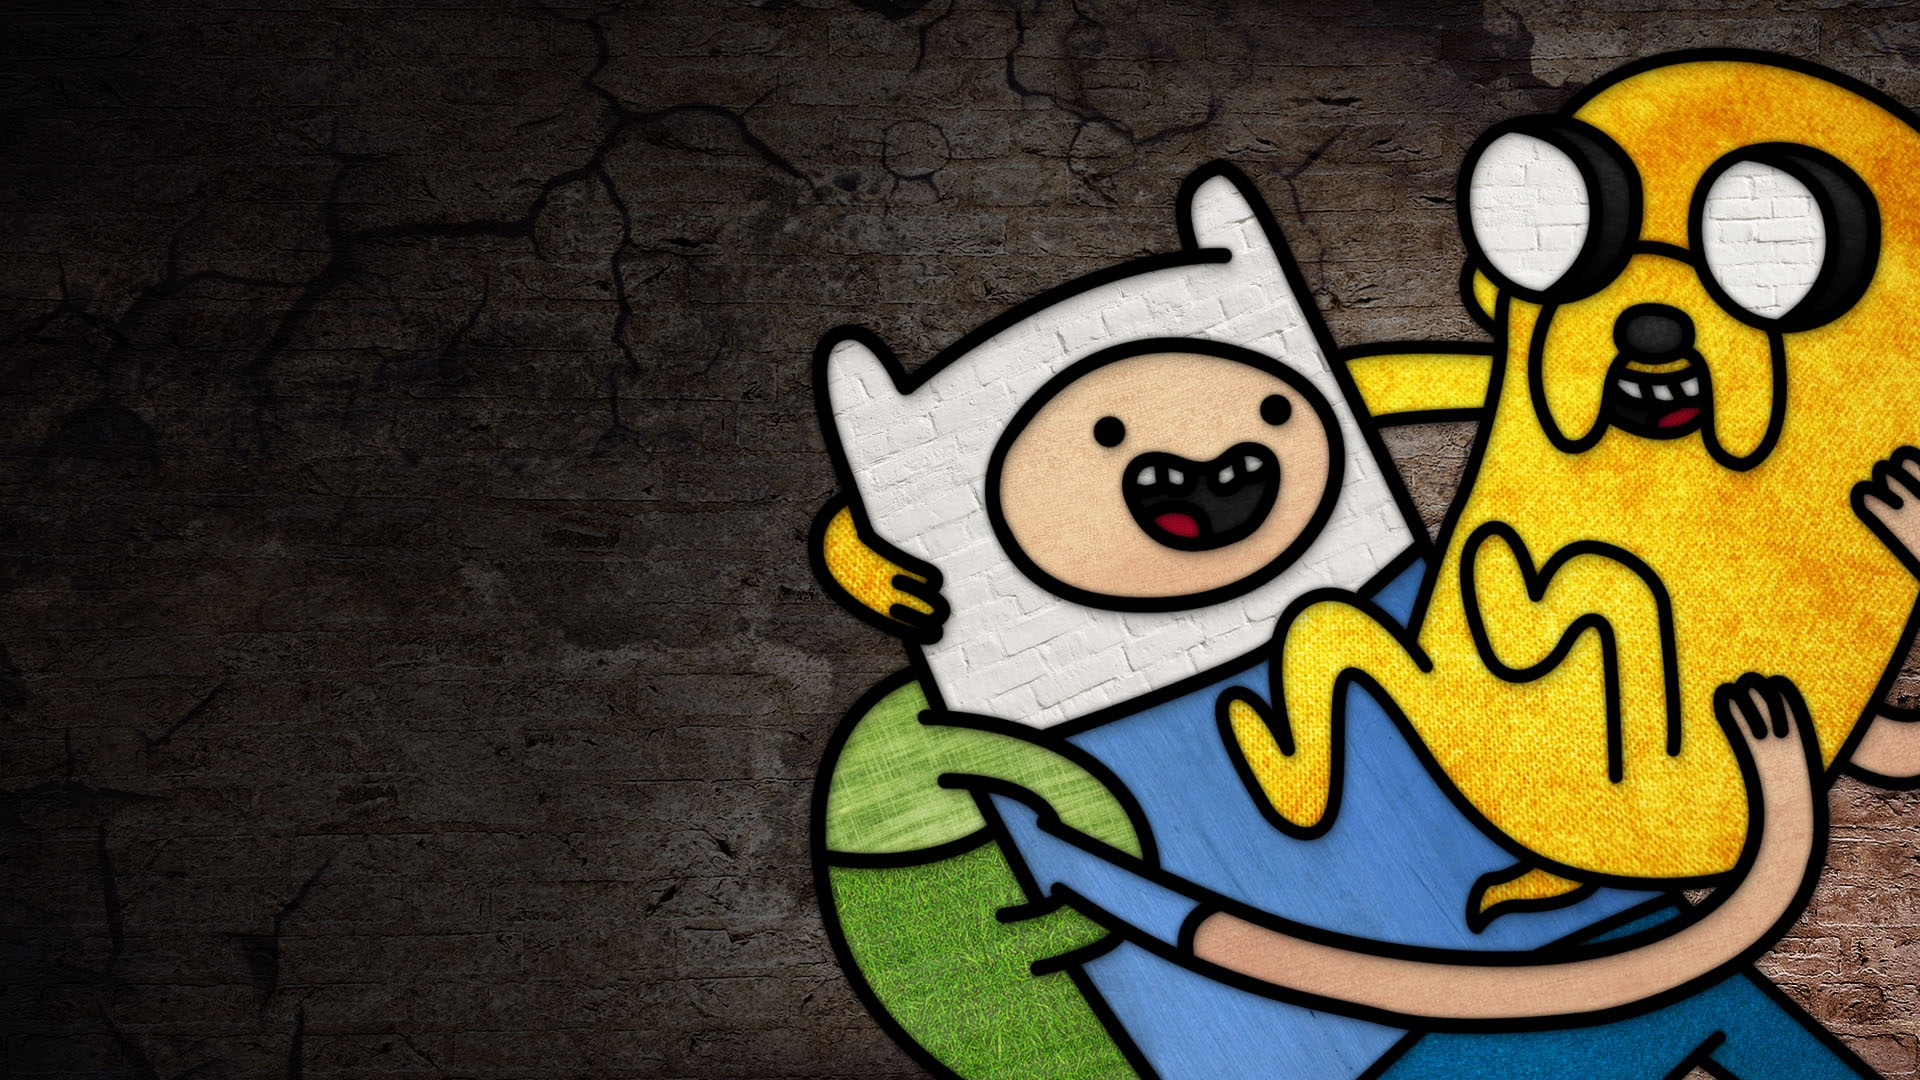 Finn and Jake Adventure Time Wallpaper 17341 1920x1080